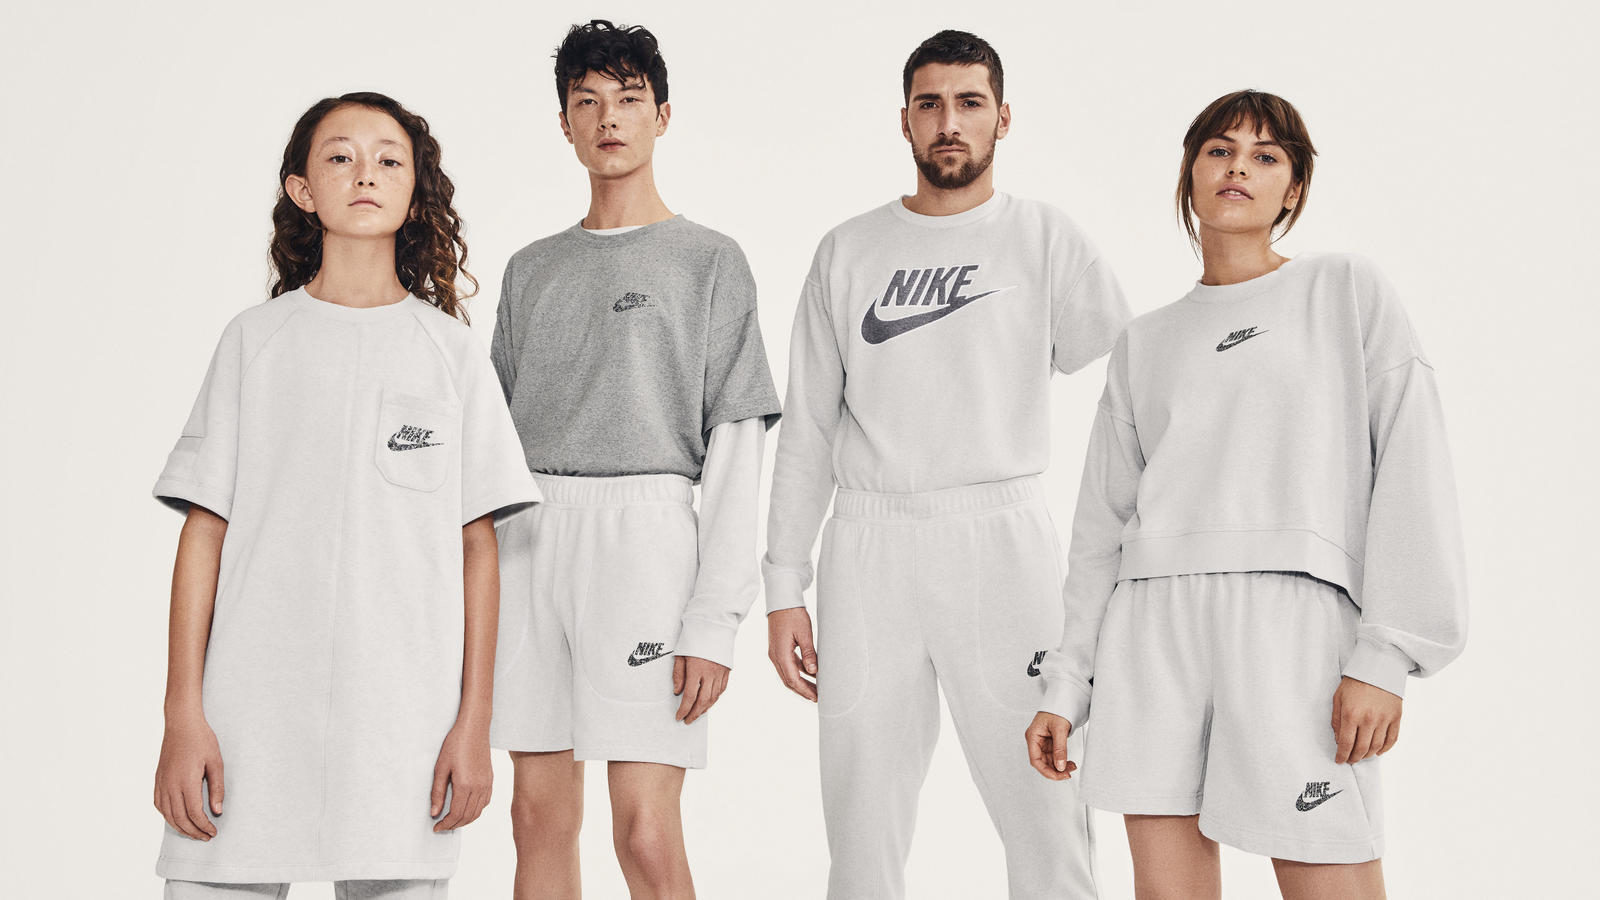 Nike champions zero carbon and zero waste with the Revival apparel collection